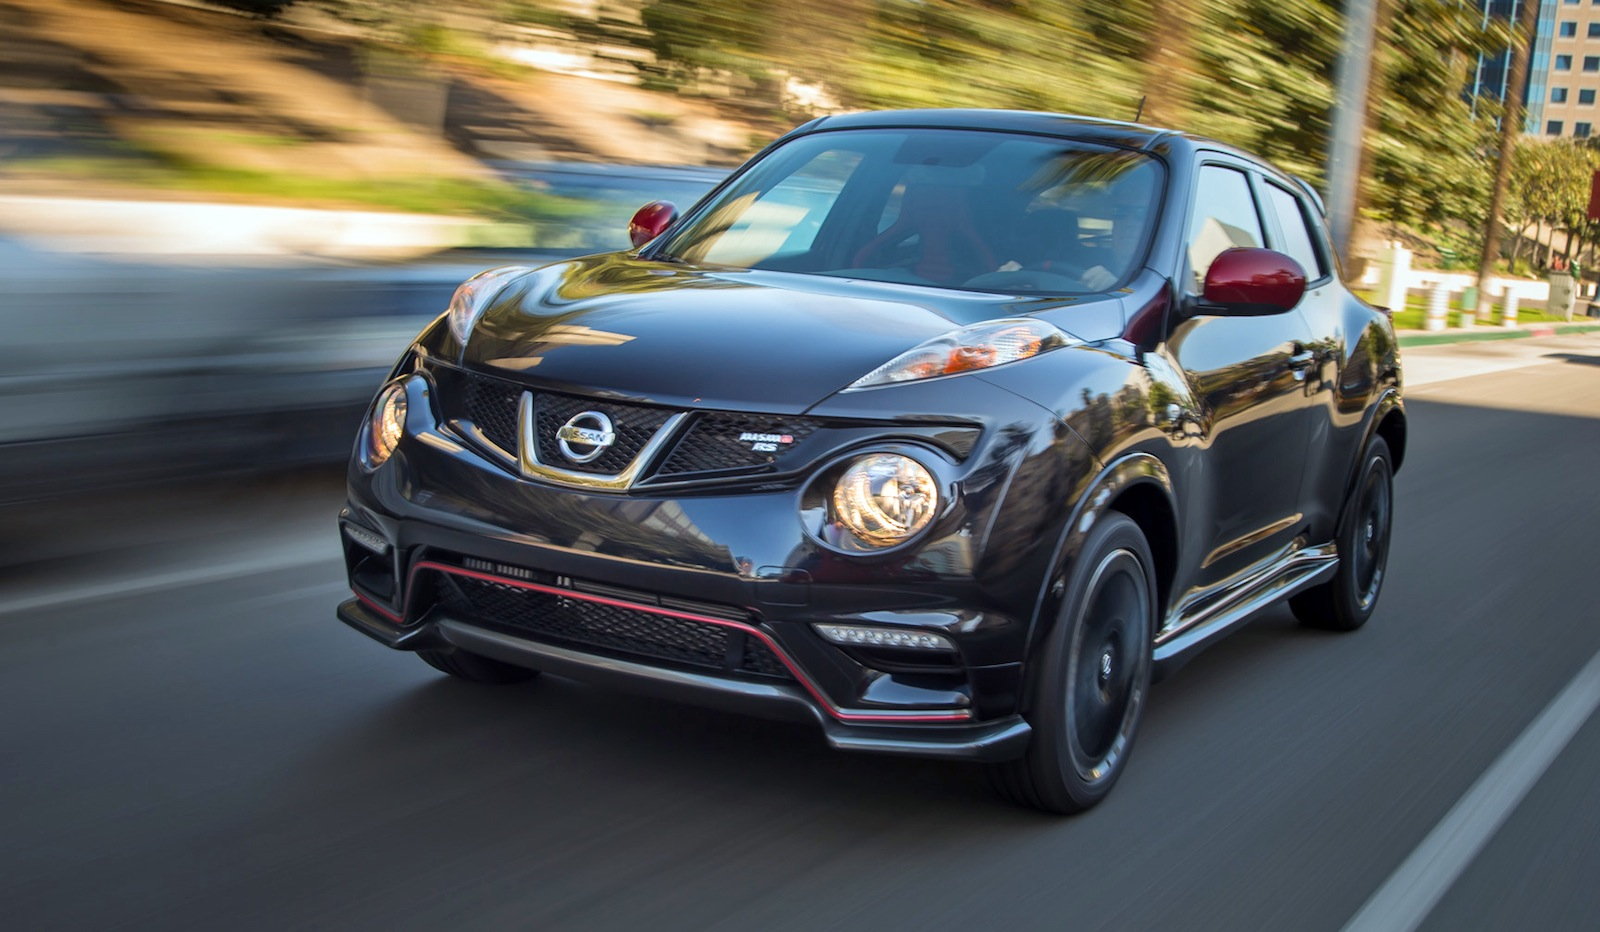 nissan juke nismo rs 160kw hardcore crossover unveiled photos caradvice. Black Bedroom Furniture Sets. Home Design Ideas